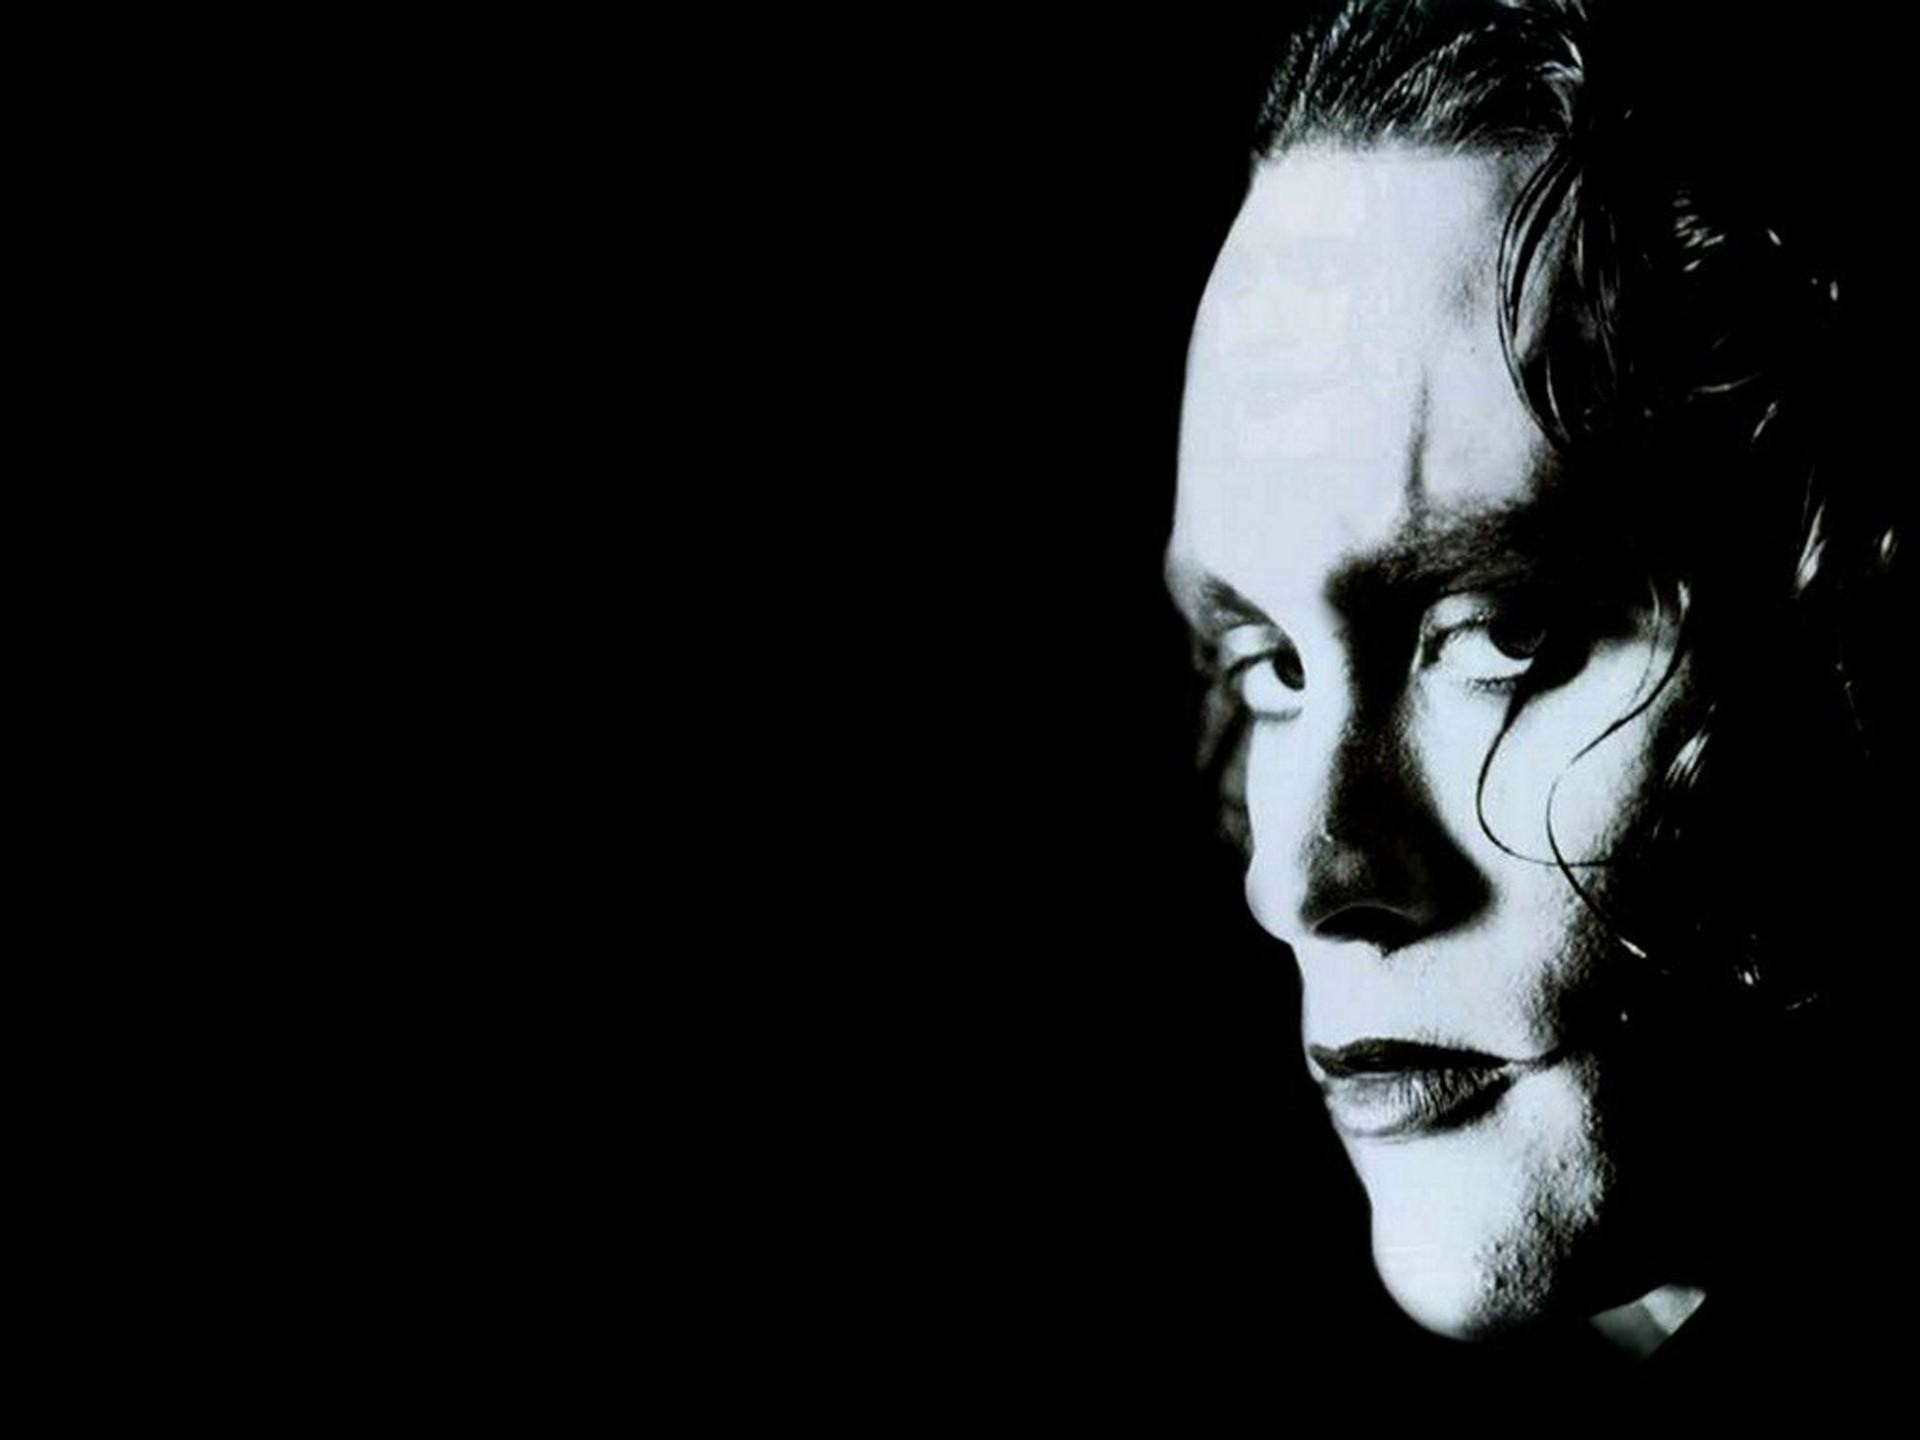 Explore Brandon Lee, The Crow, and more!